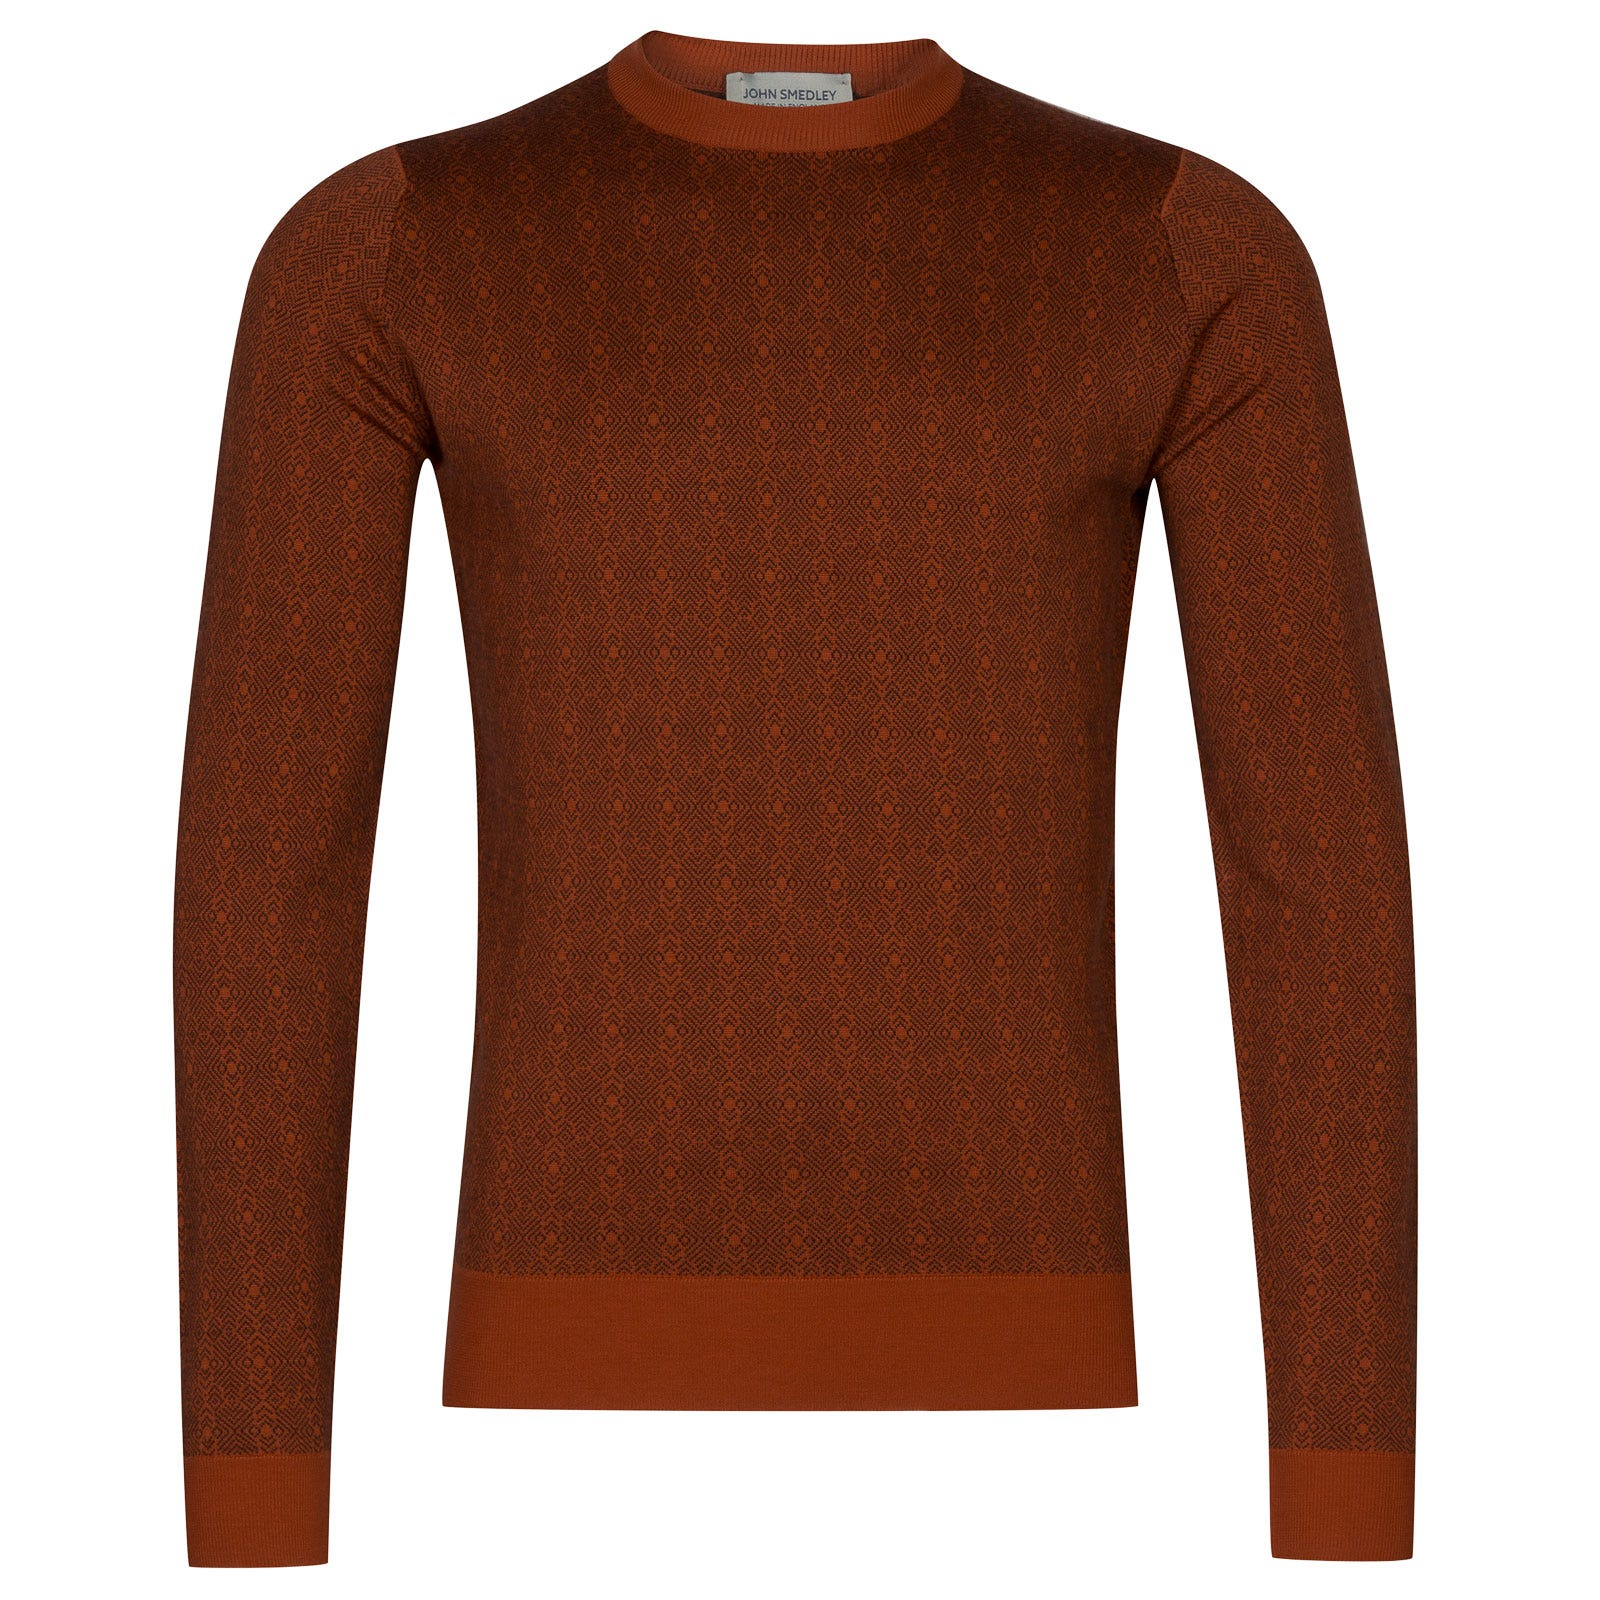 John Smedley rutland Merino Wool Pullover in Chestnut/Flare Orange-XL